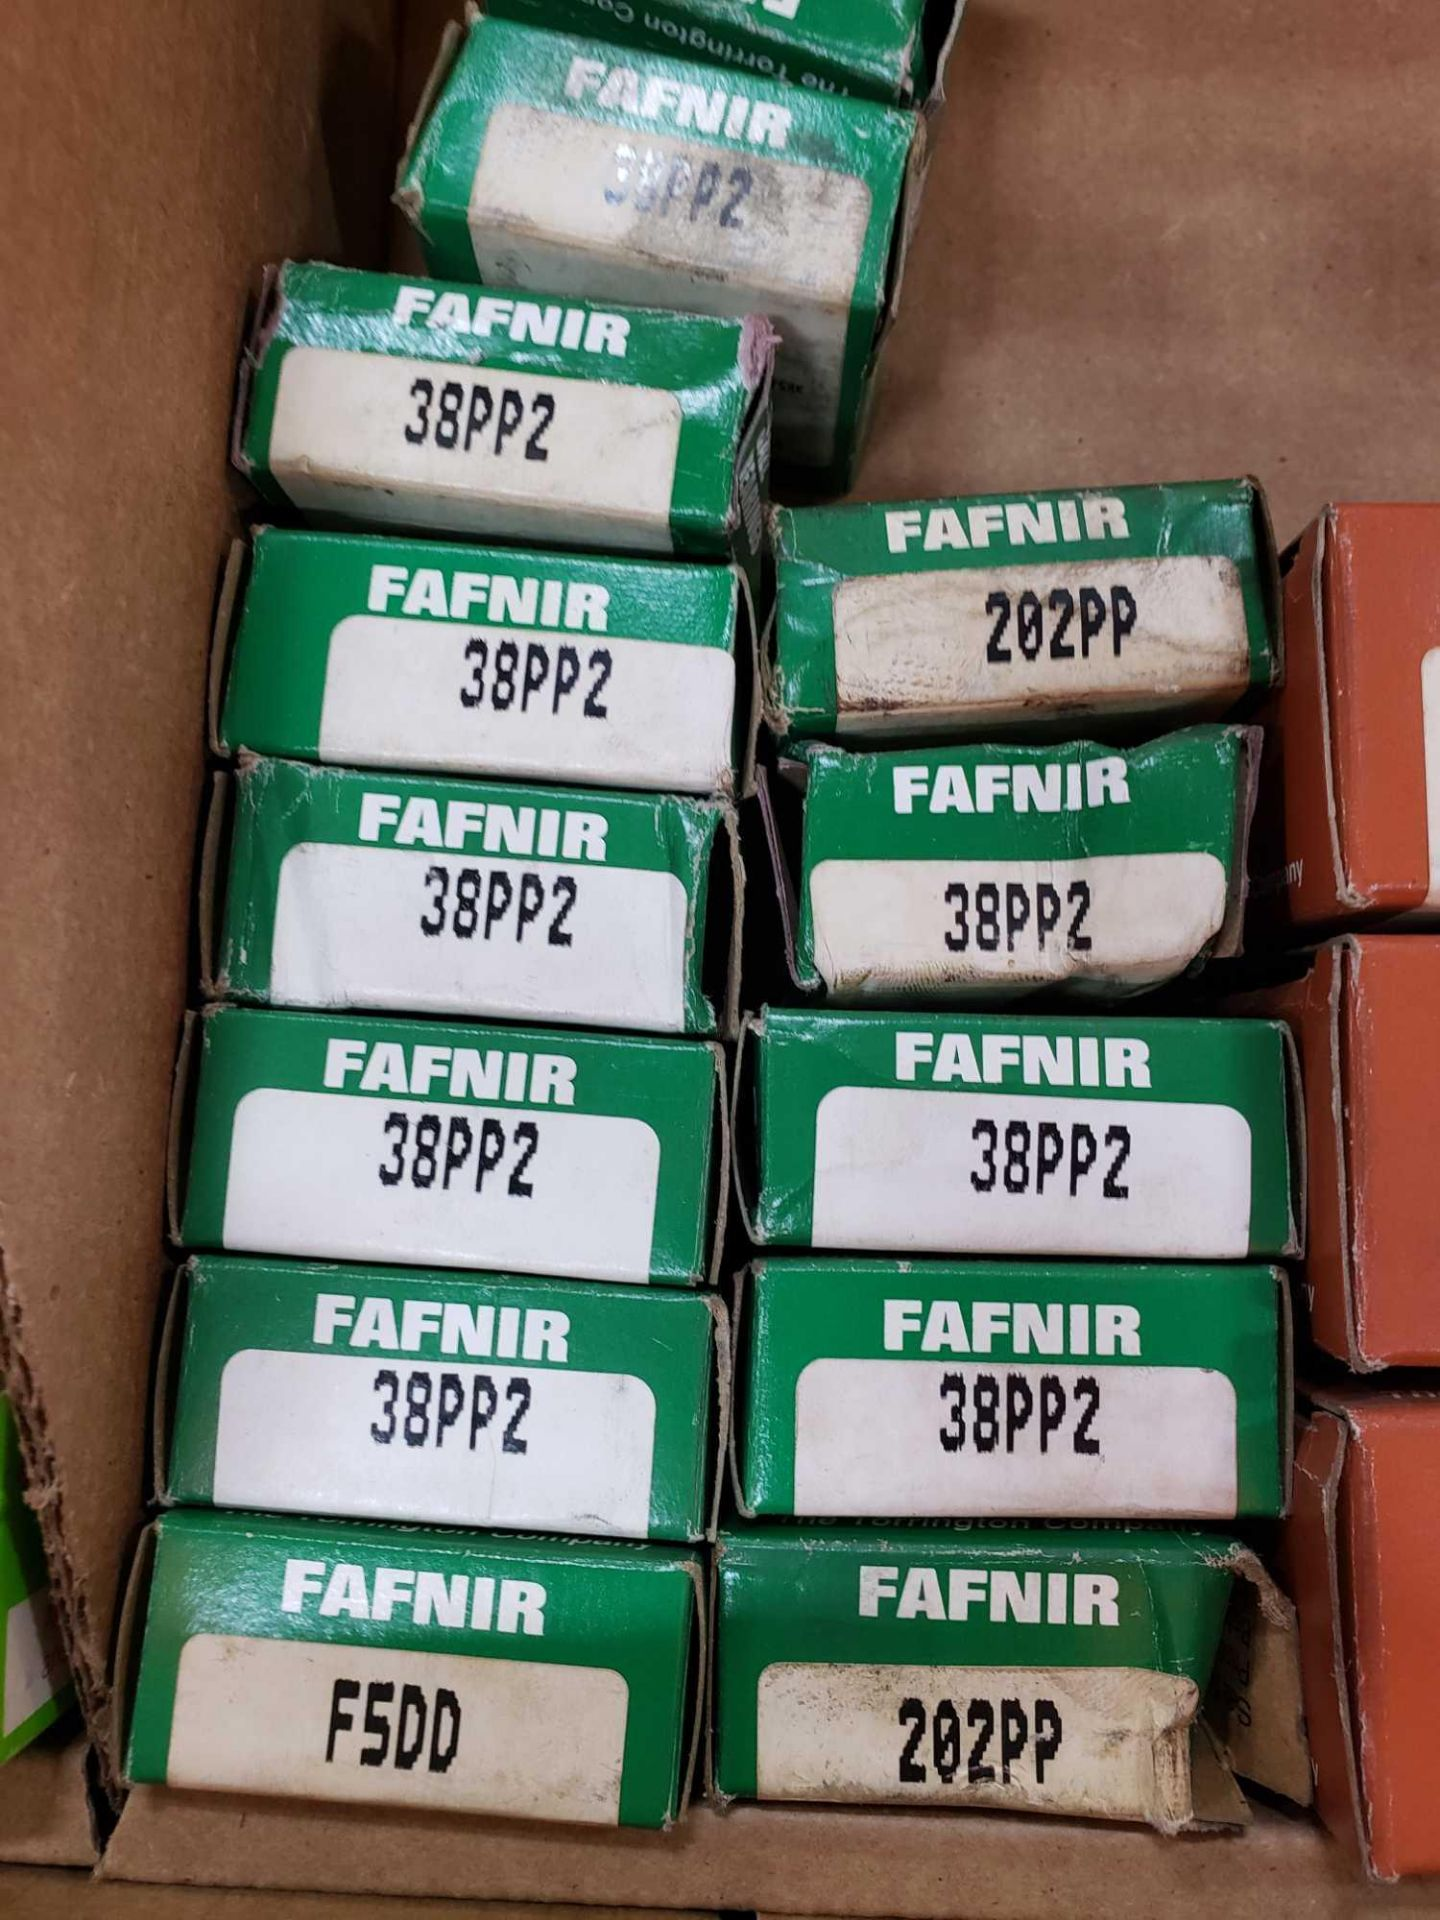 Lot 59 - Qty 21 - Fafnir Bearings assorted part numbers as pictured.